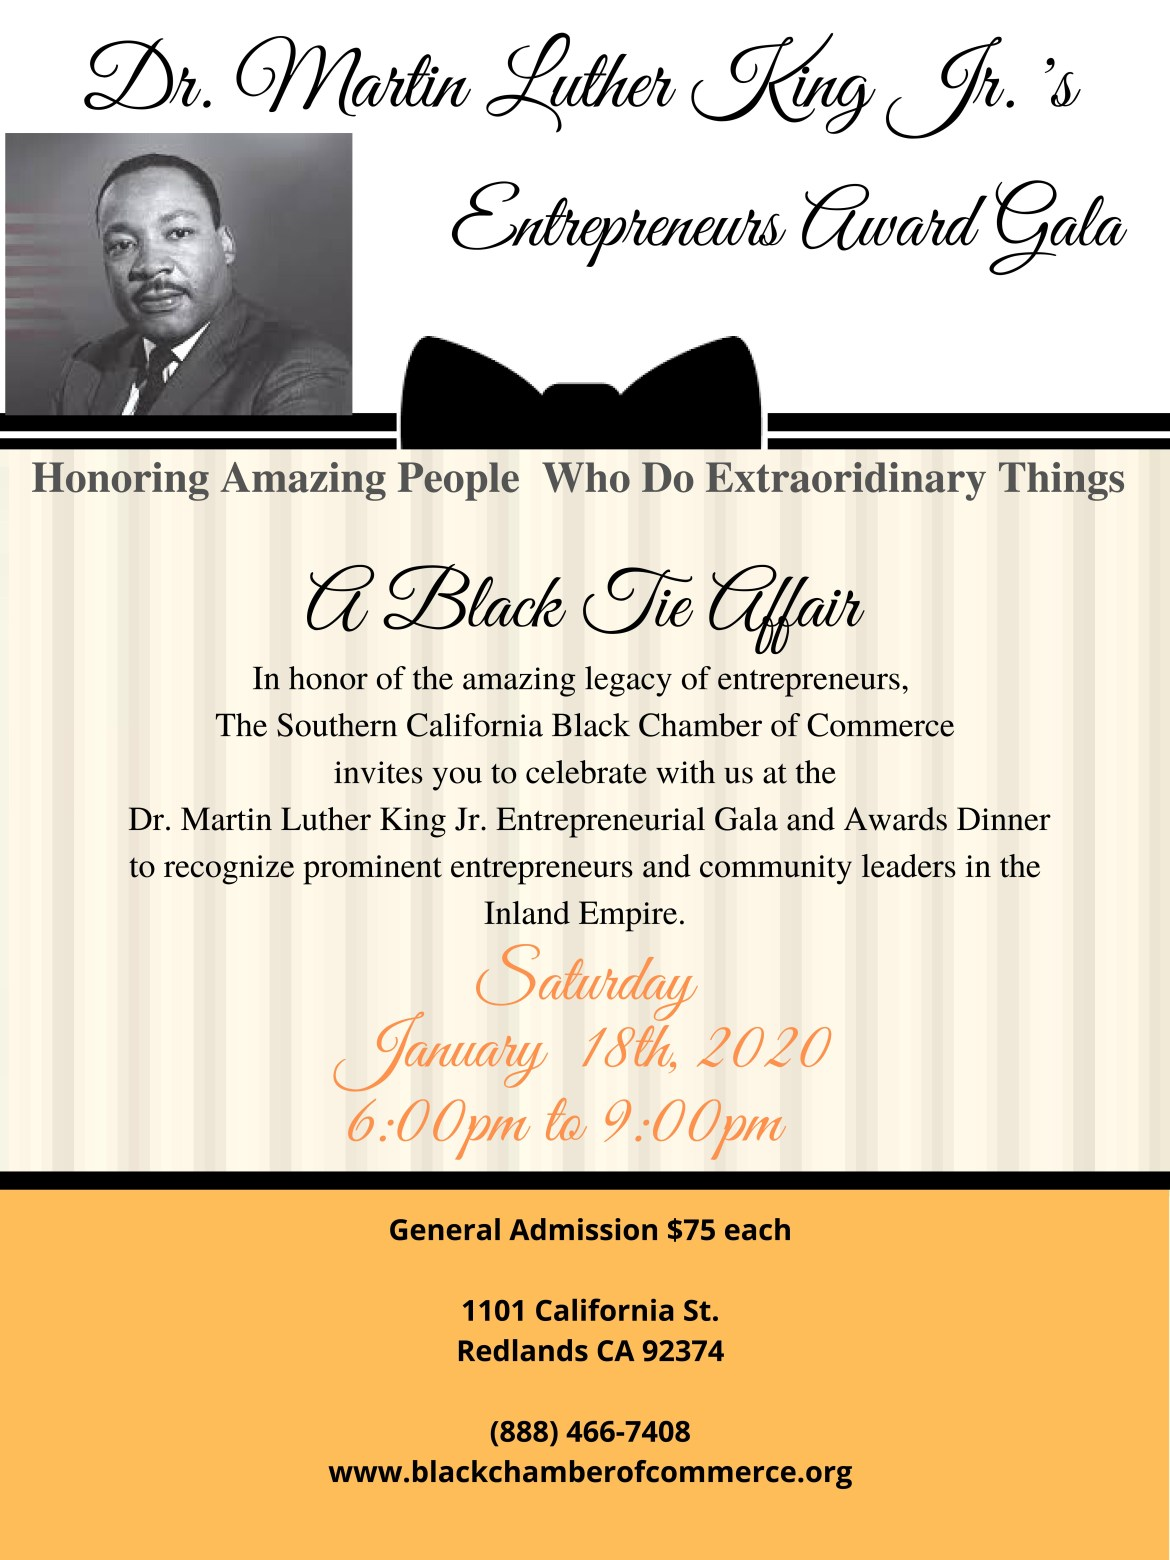 The 2nd Annual Entrepreneurs Gala